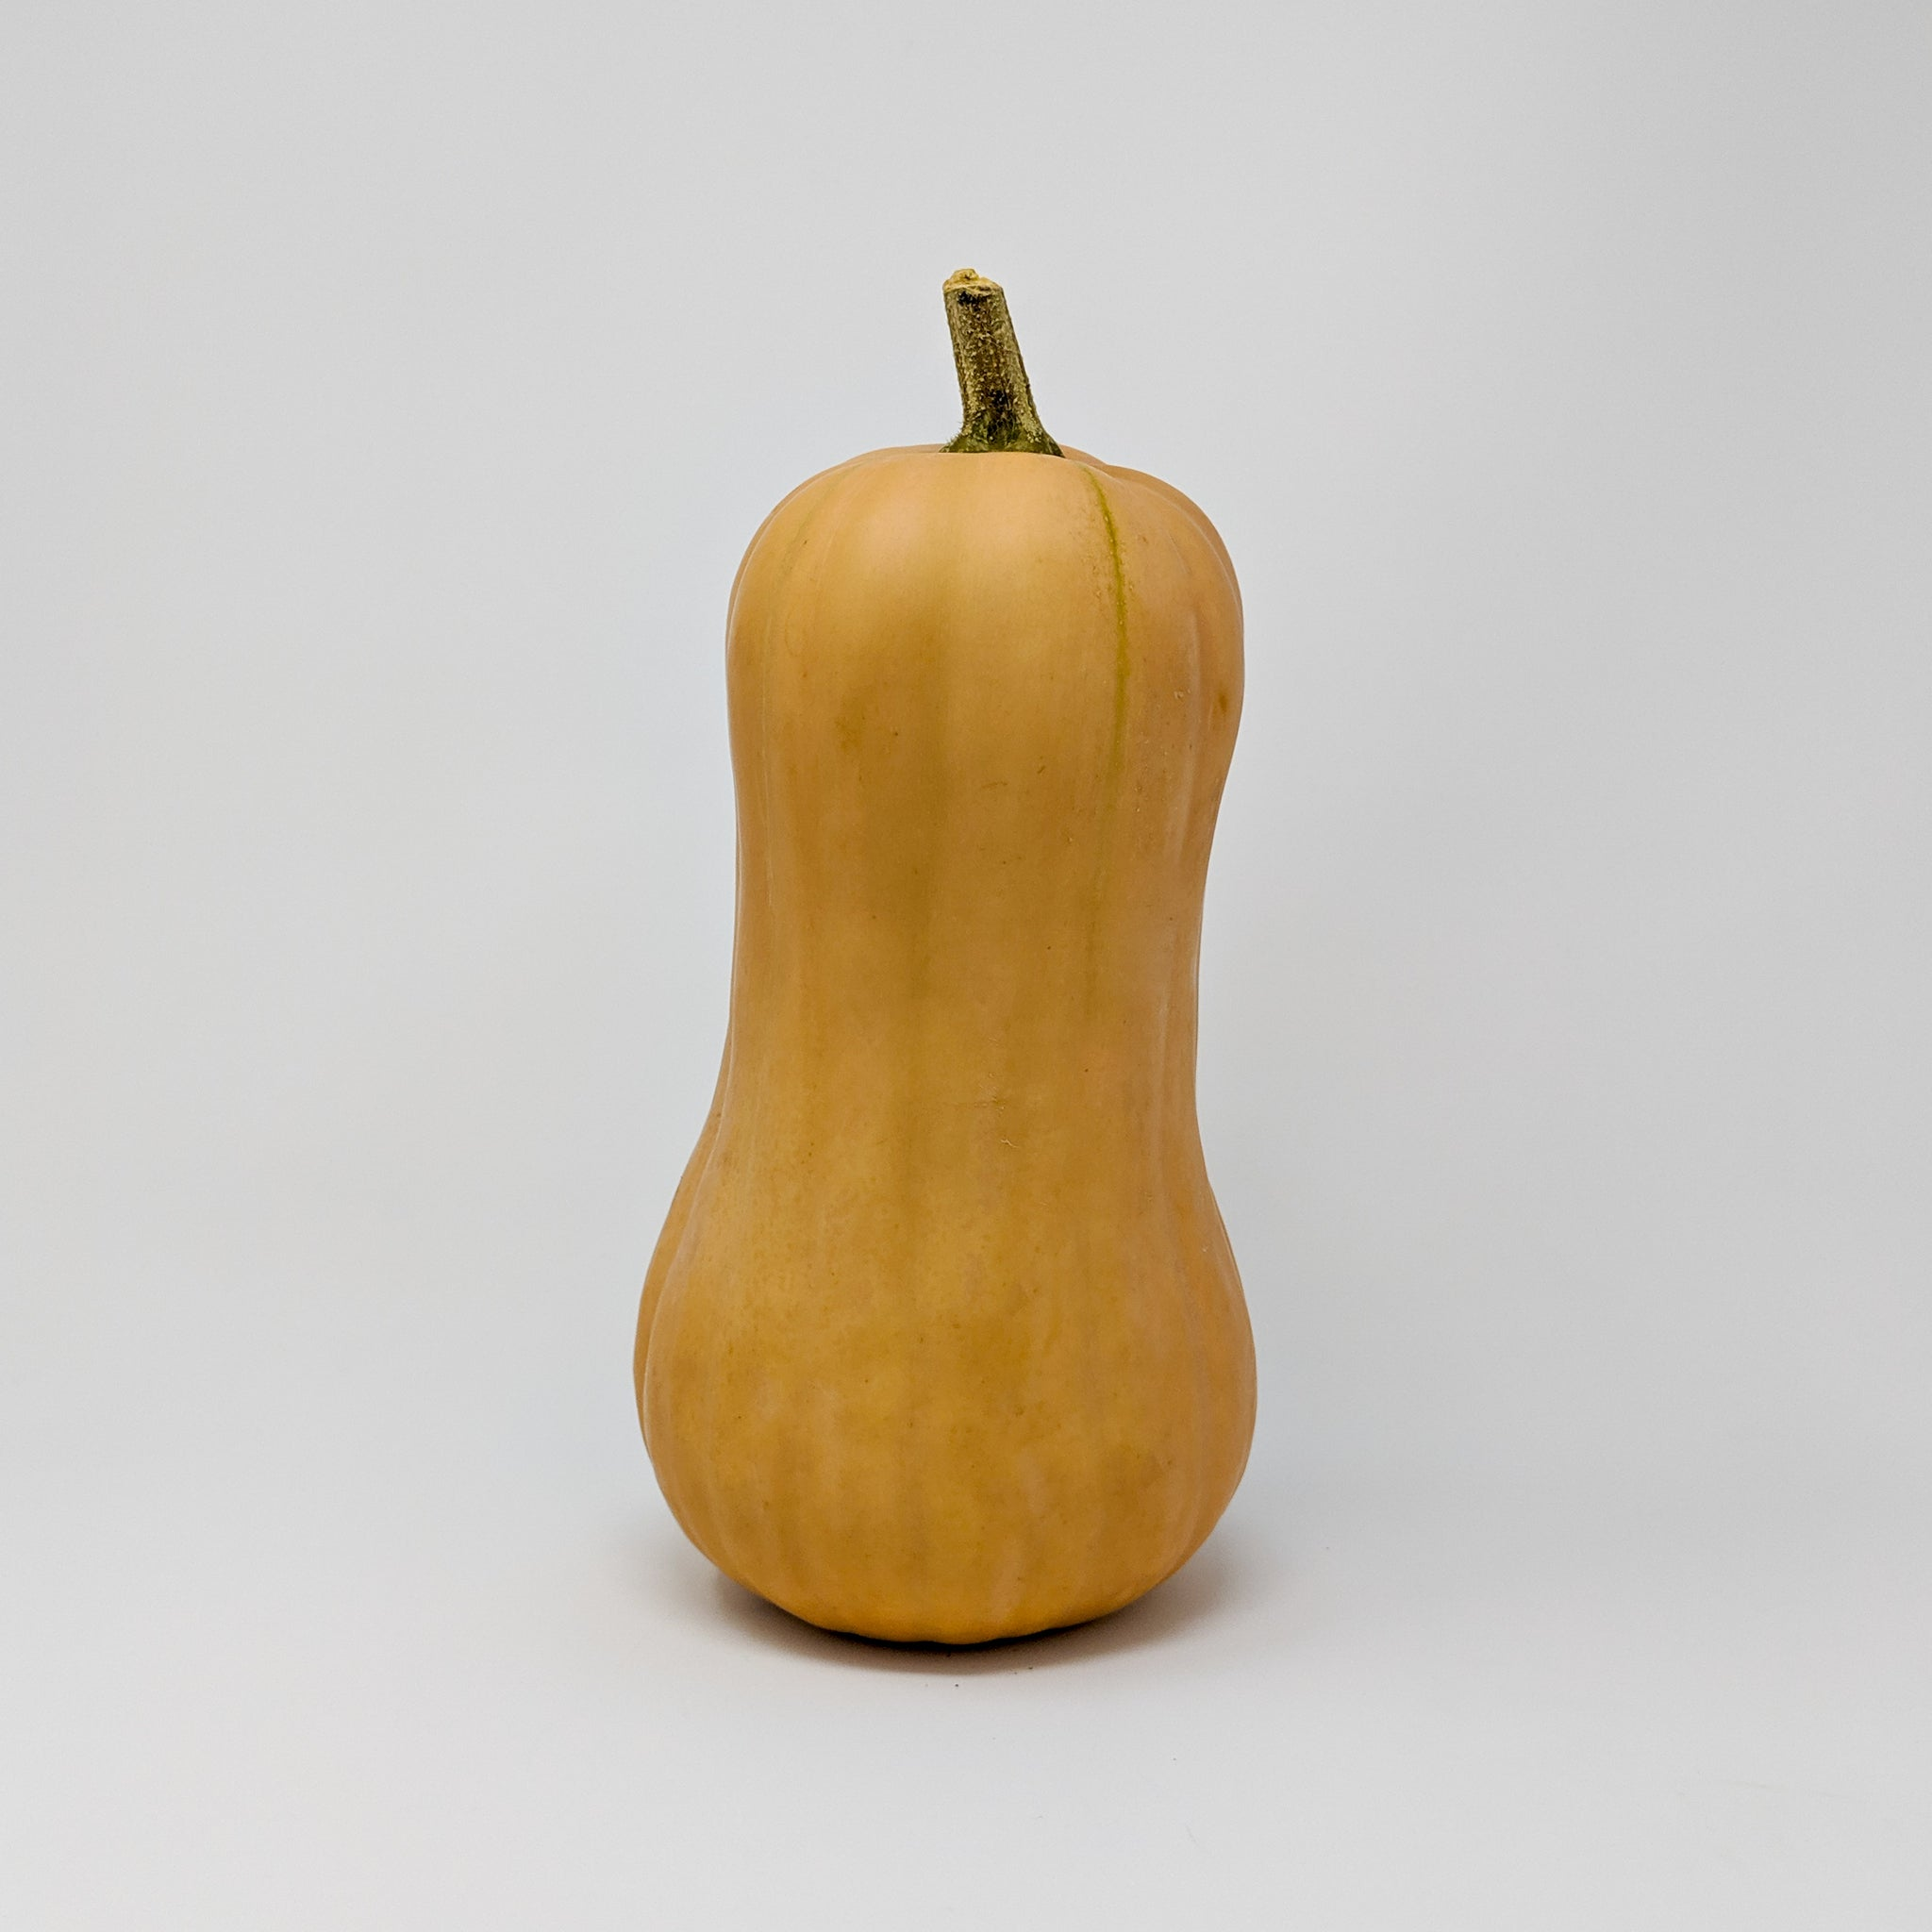 Butternut Squash - Manitoba Grown